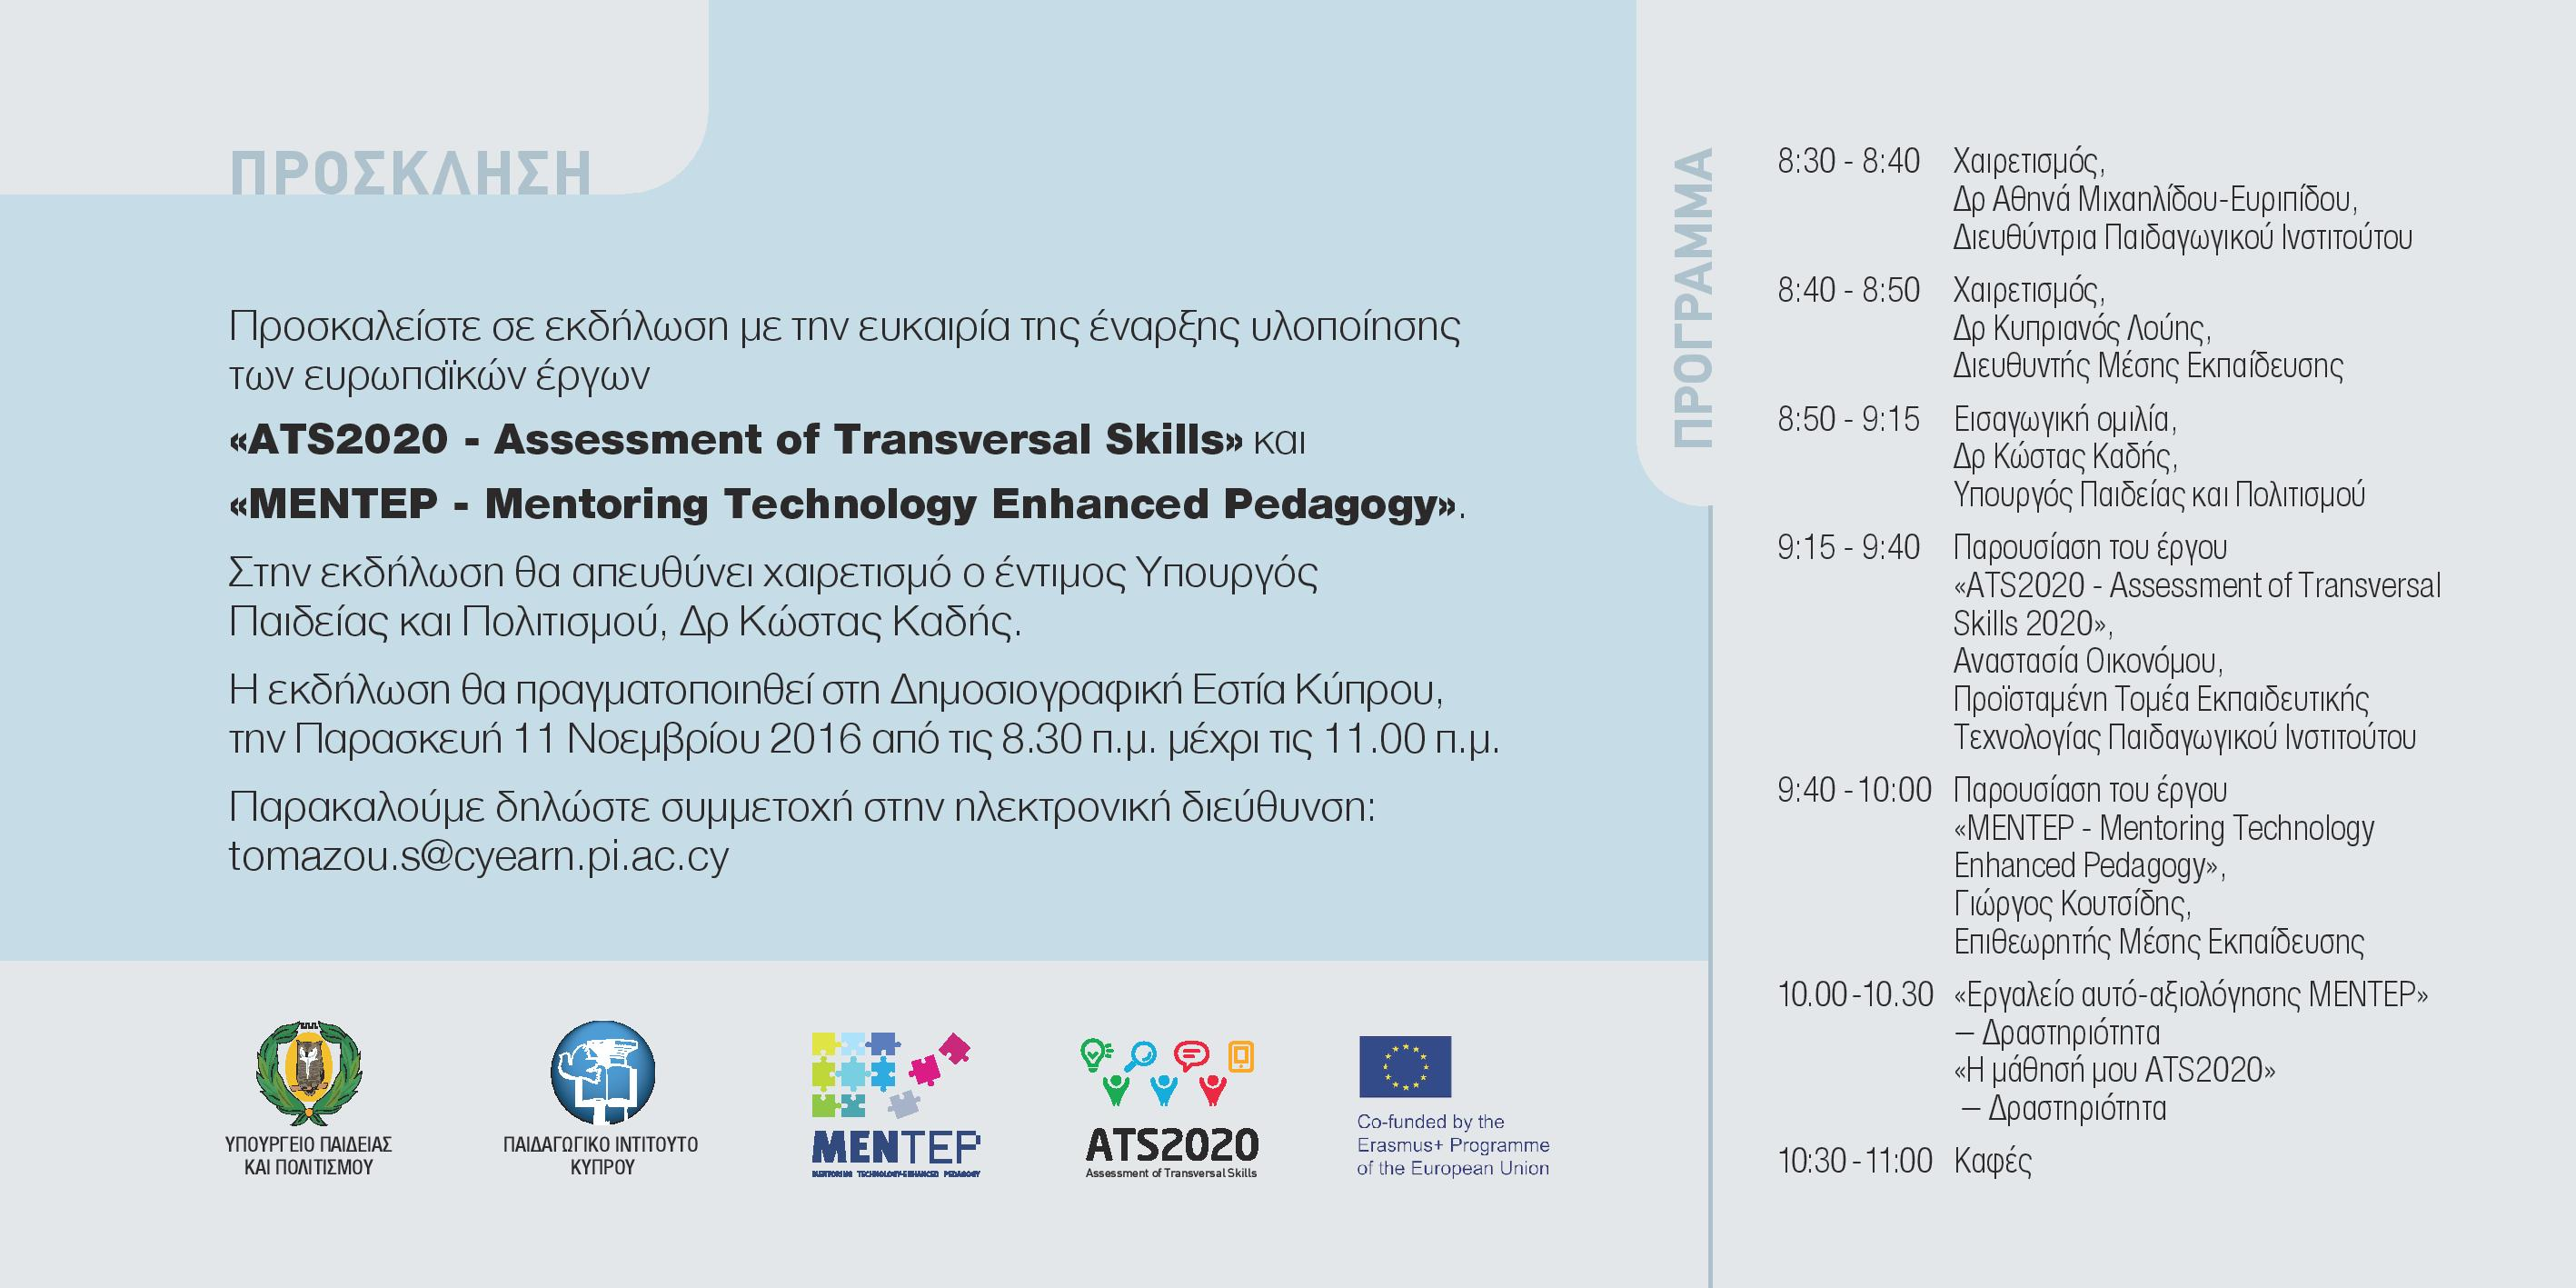 Upcoming event in Nicosia,Cyprus marks commencement of ATS2020 pilot implementation